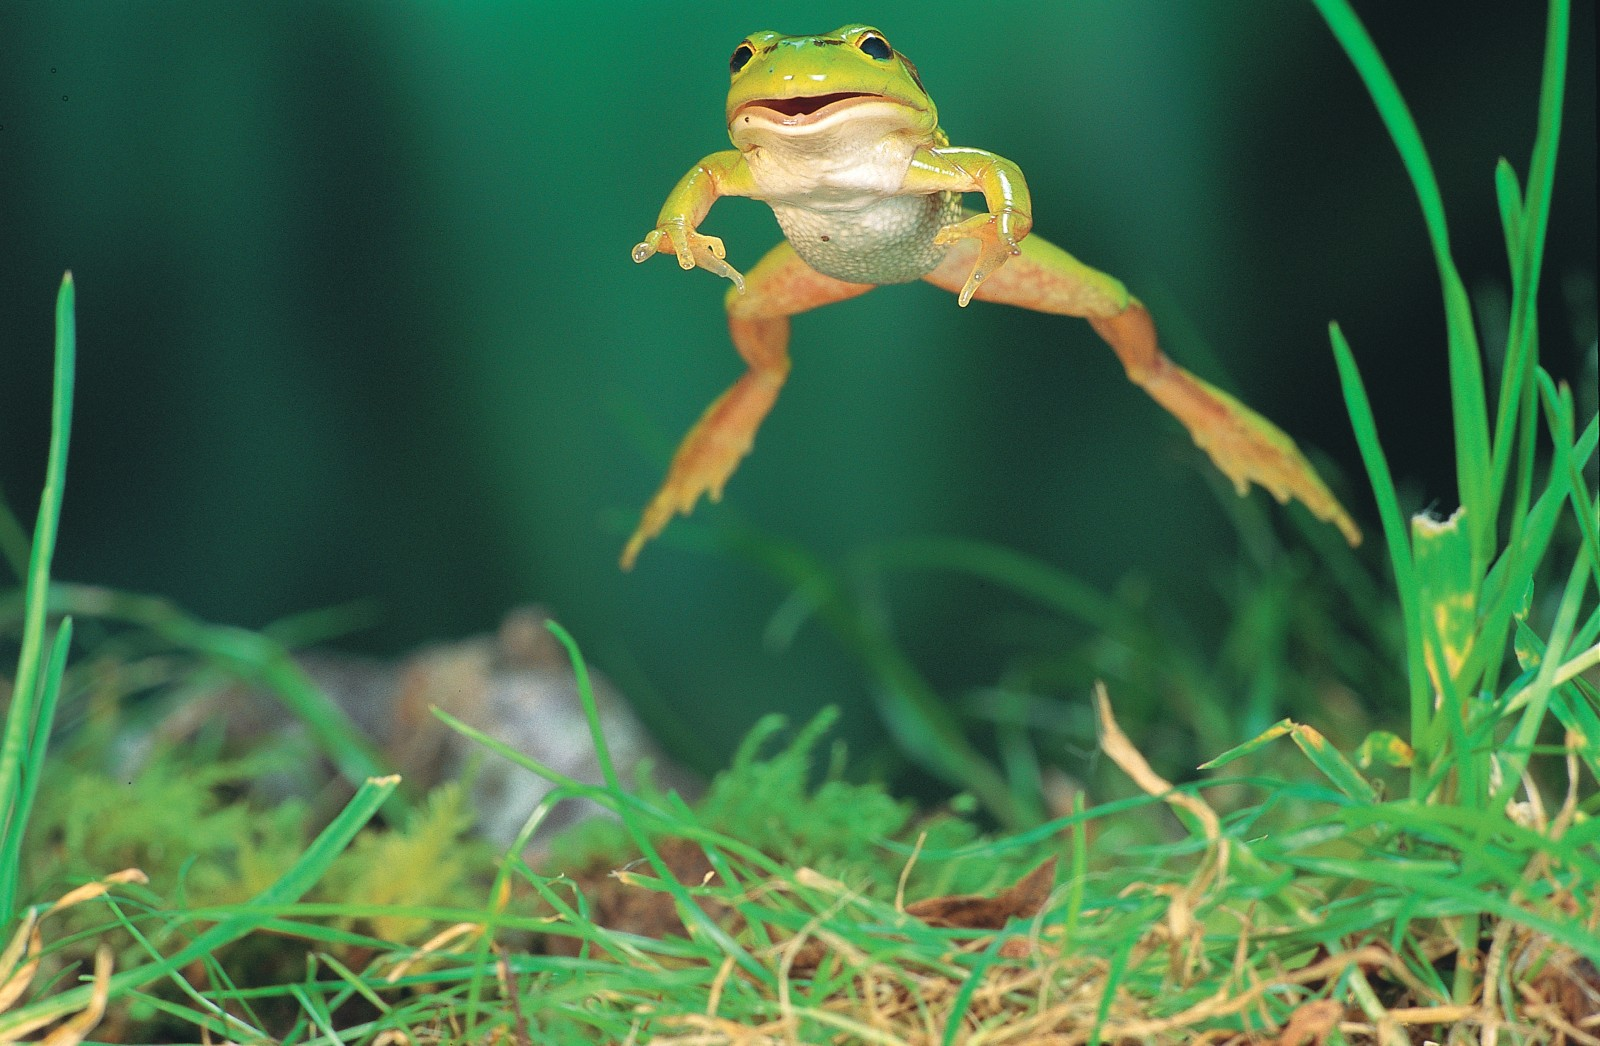 While frogs can walk, crawl and swim, the hop is their defining characteristicably demonstrated by this green and golden bell frog. But with reports of a worldwide decline in frog numbers, will our amphibious friends be able to keep one jump ahead of the problems that threaten them?